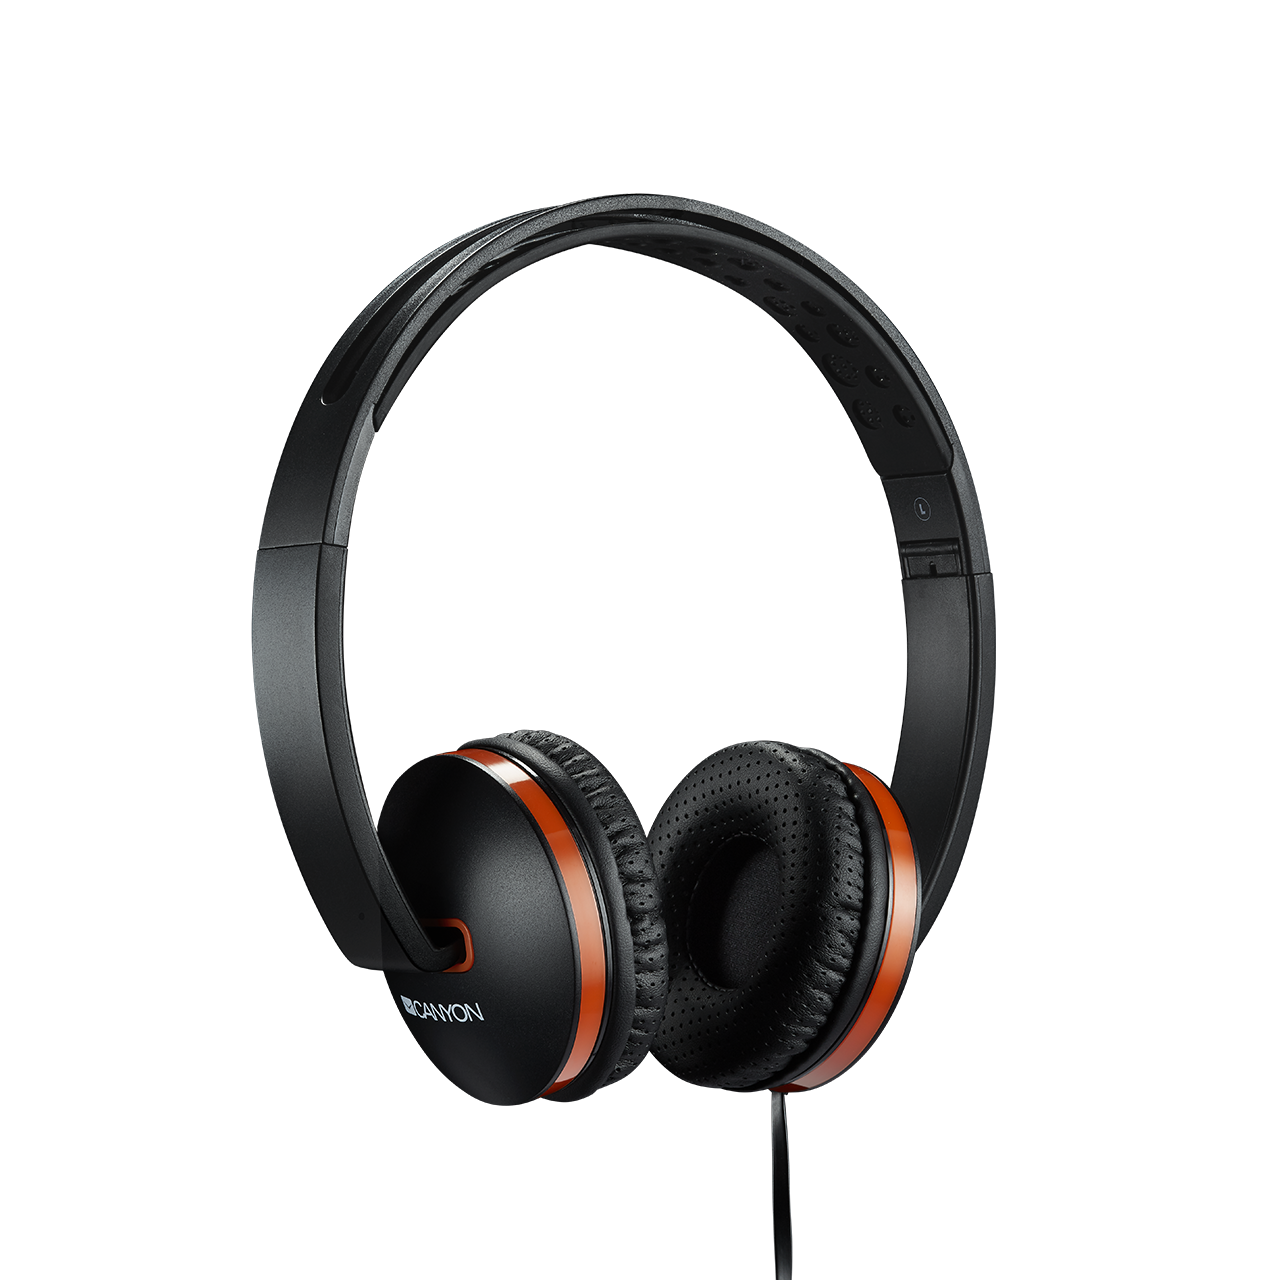 Casti Headset Canyon CNS-CHP4B Black/Orange